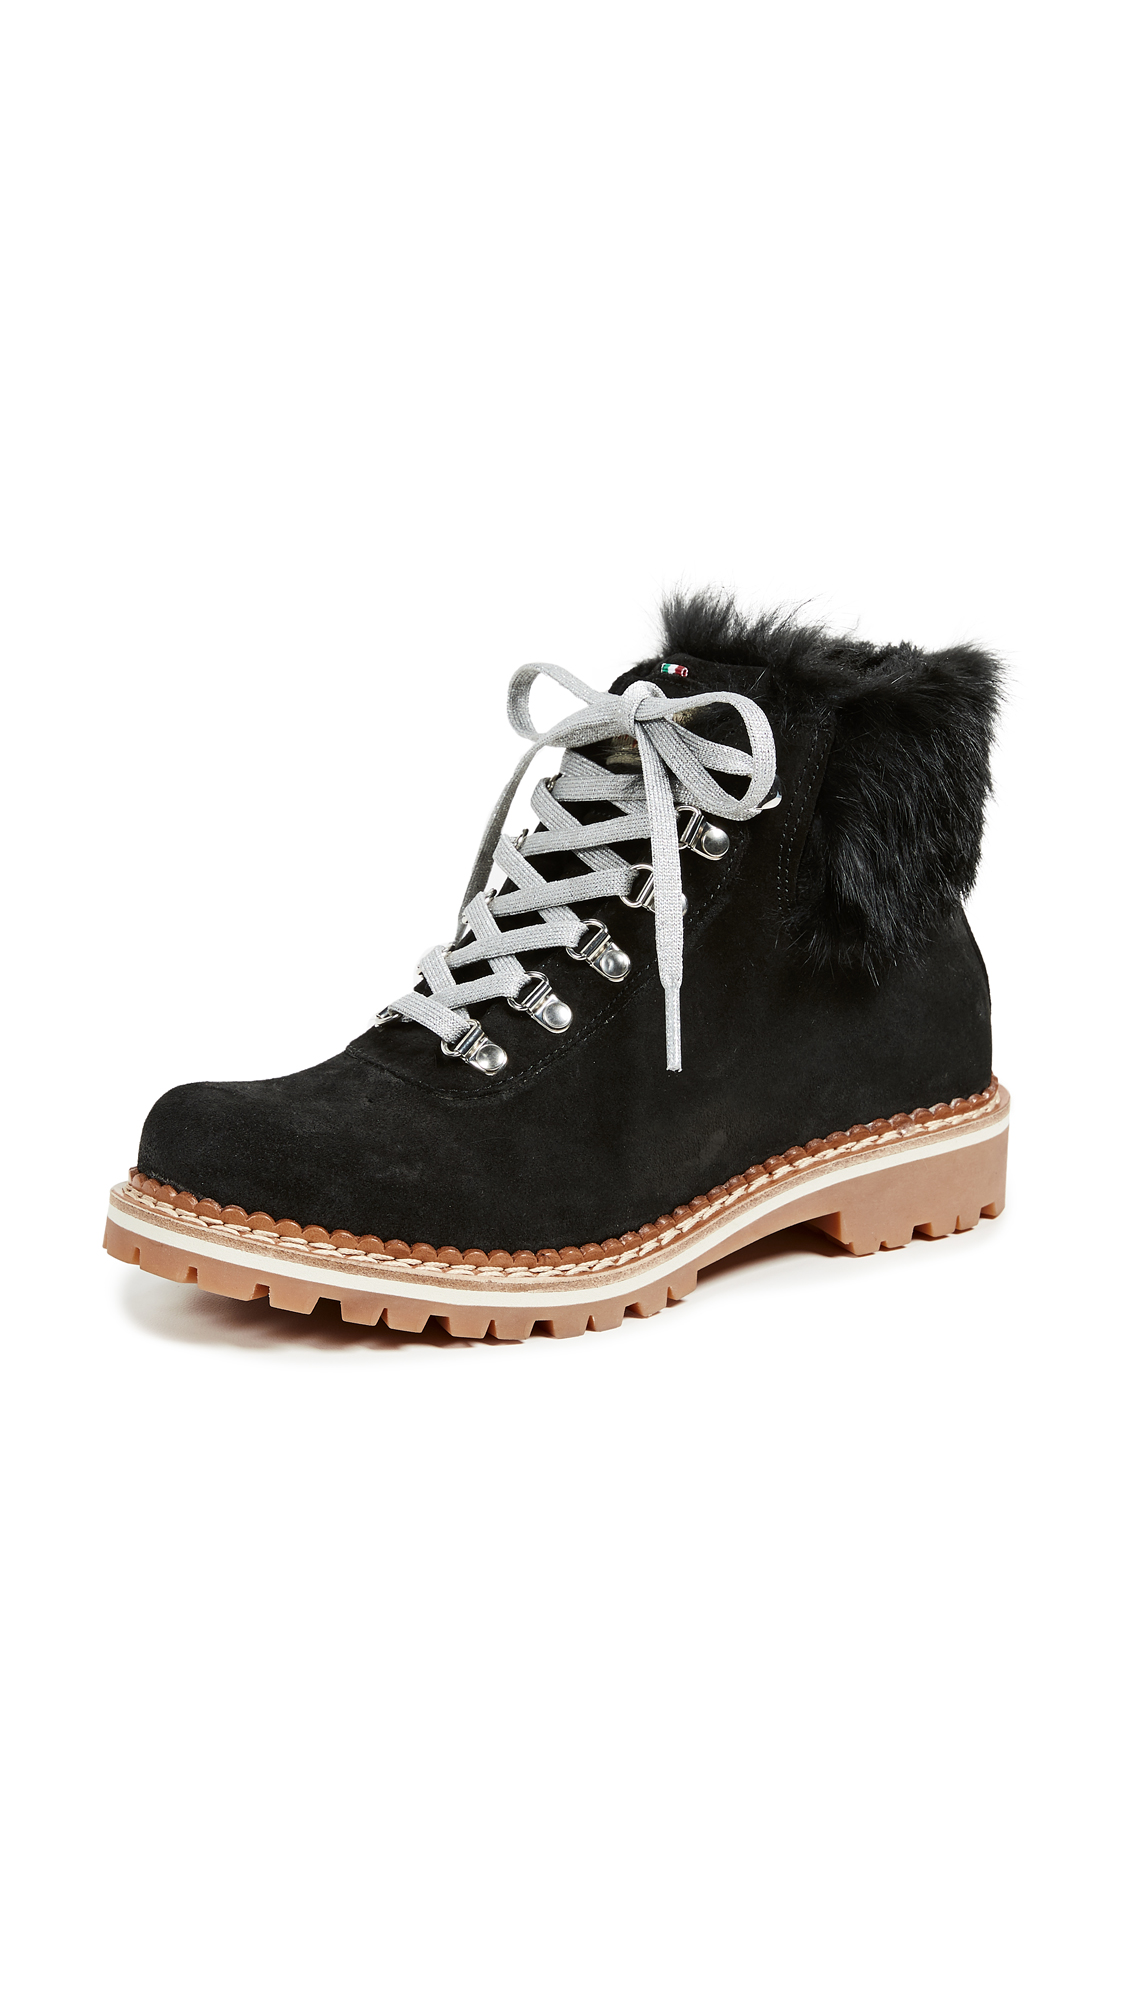 MONTELLIANA Clara Hiker Boots in Black